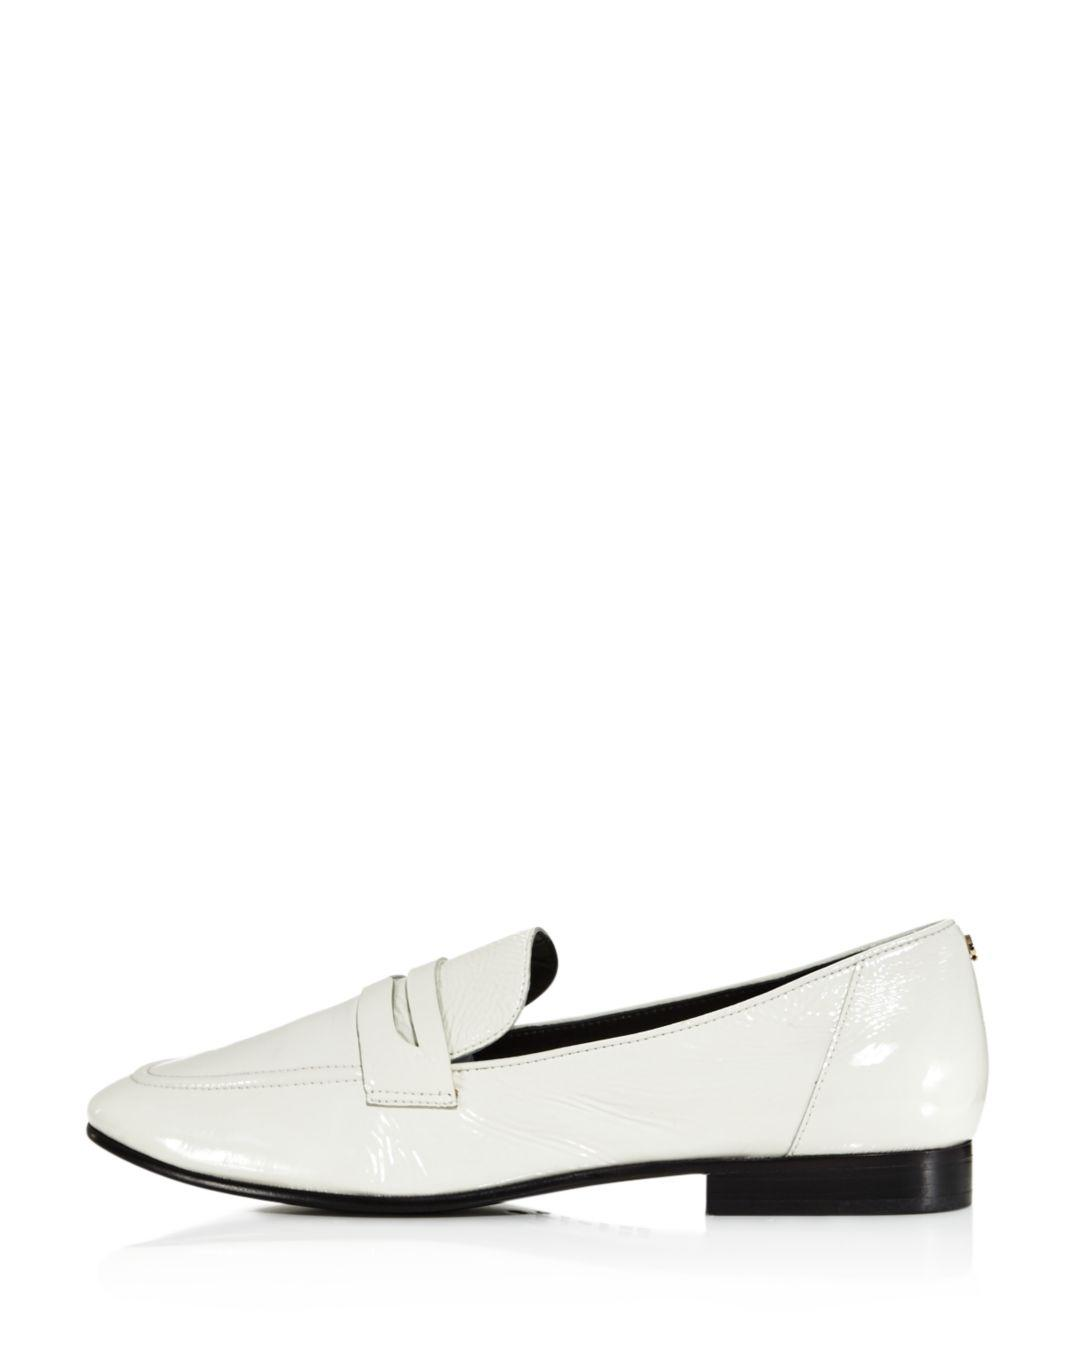 079273b99d9 Kate Spade Genevieve Loafer in White - Lyst